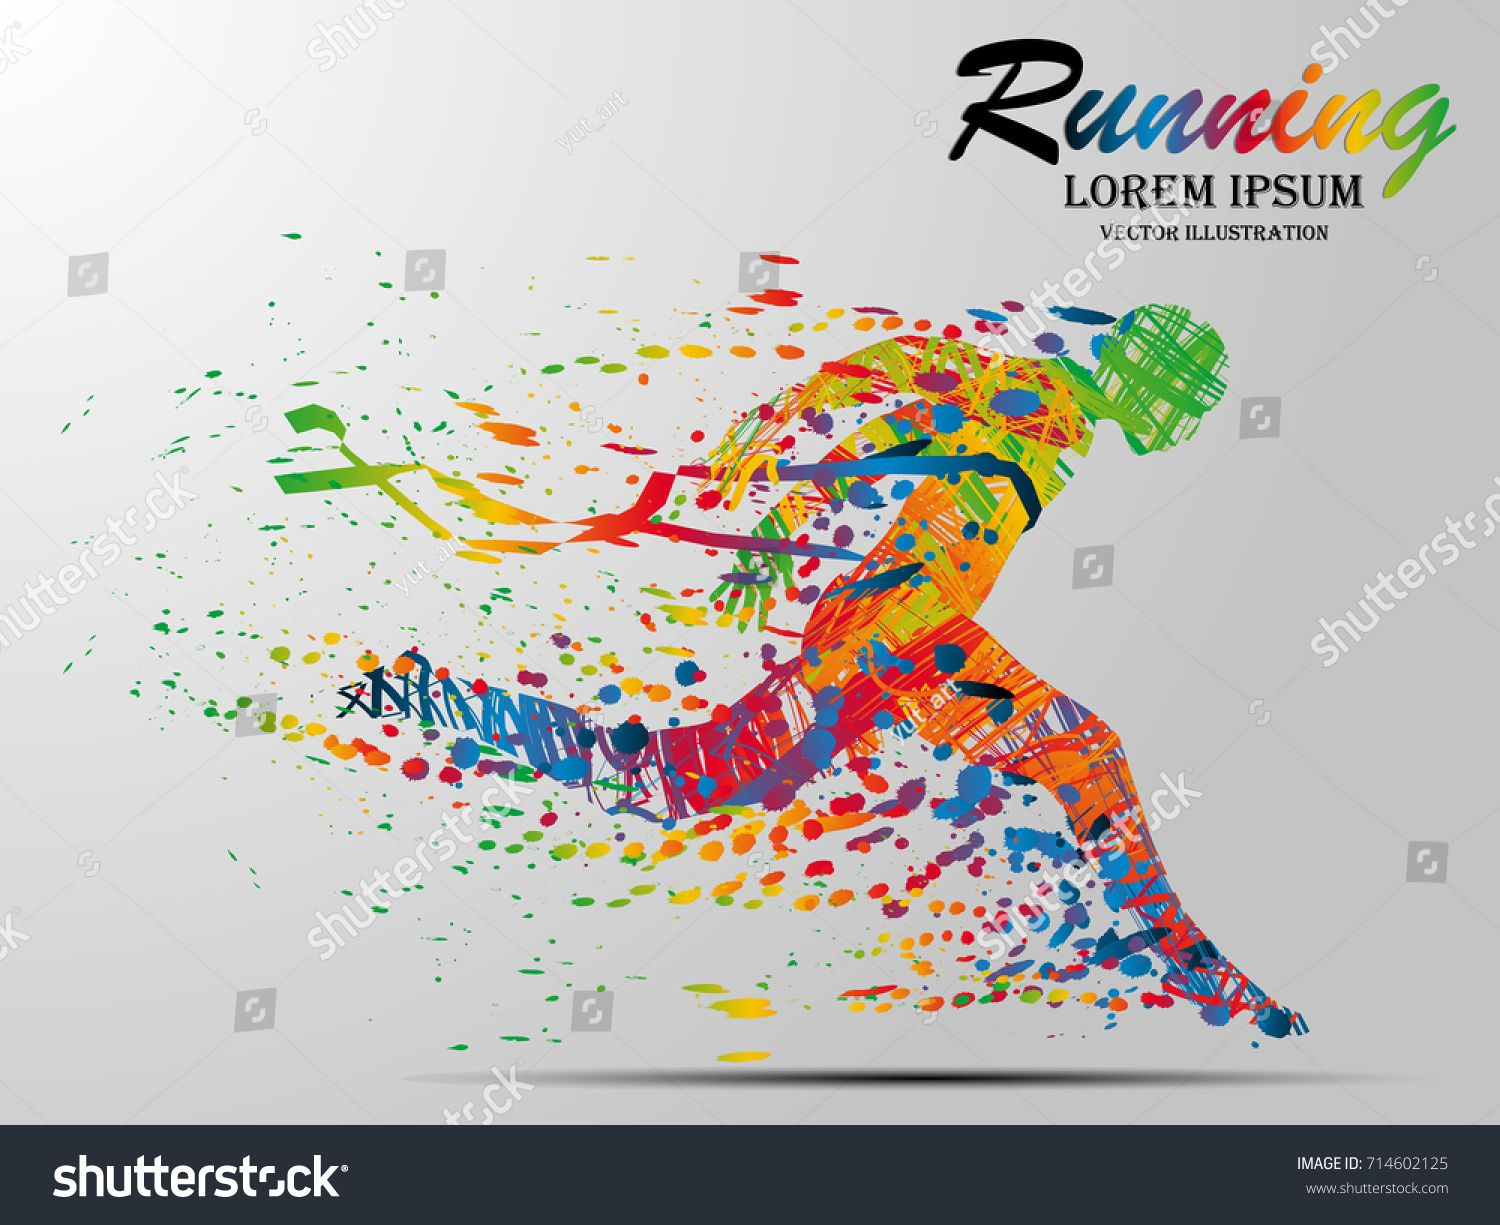 Visual Drawing Silhouettes Of Runner From Start To Finish Running And Crossing A Finish Line Winning A Race Healthy Running Images Drawings Drawing Projects